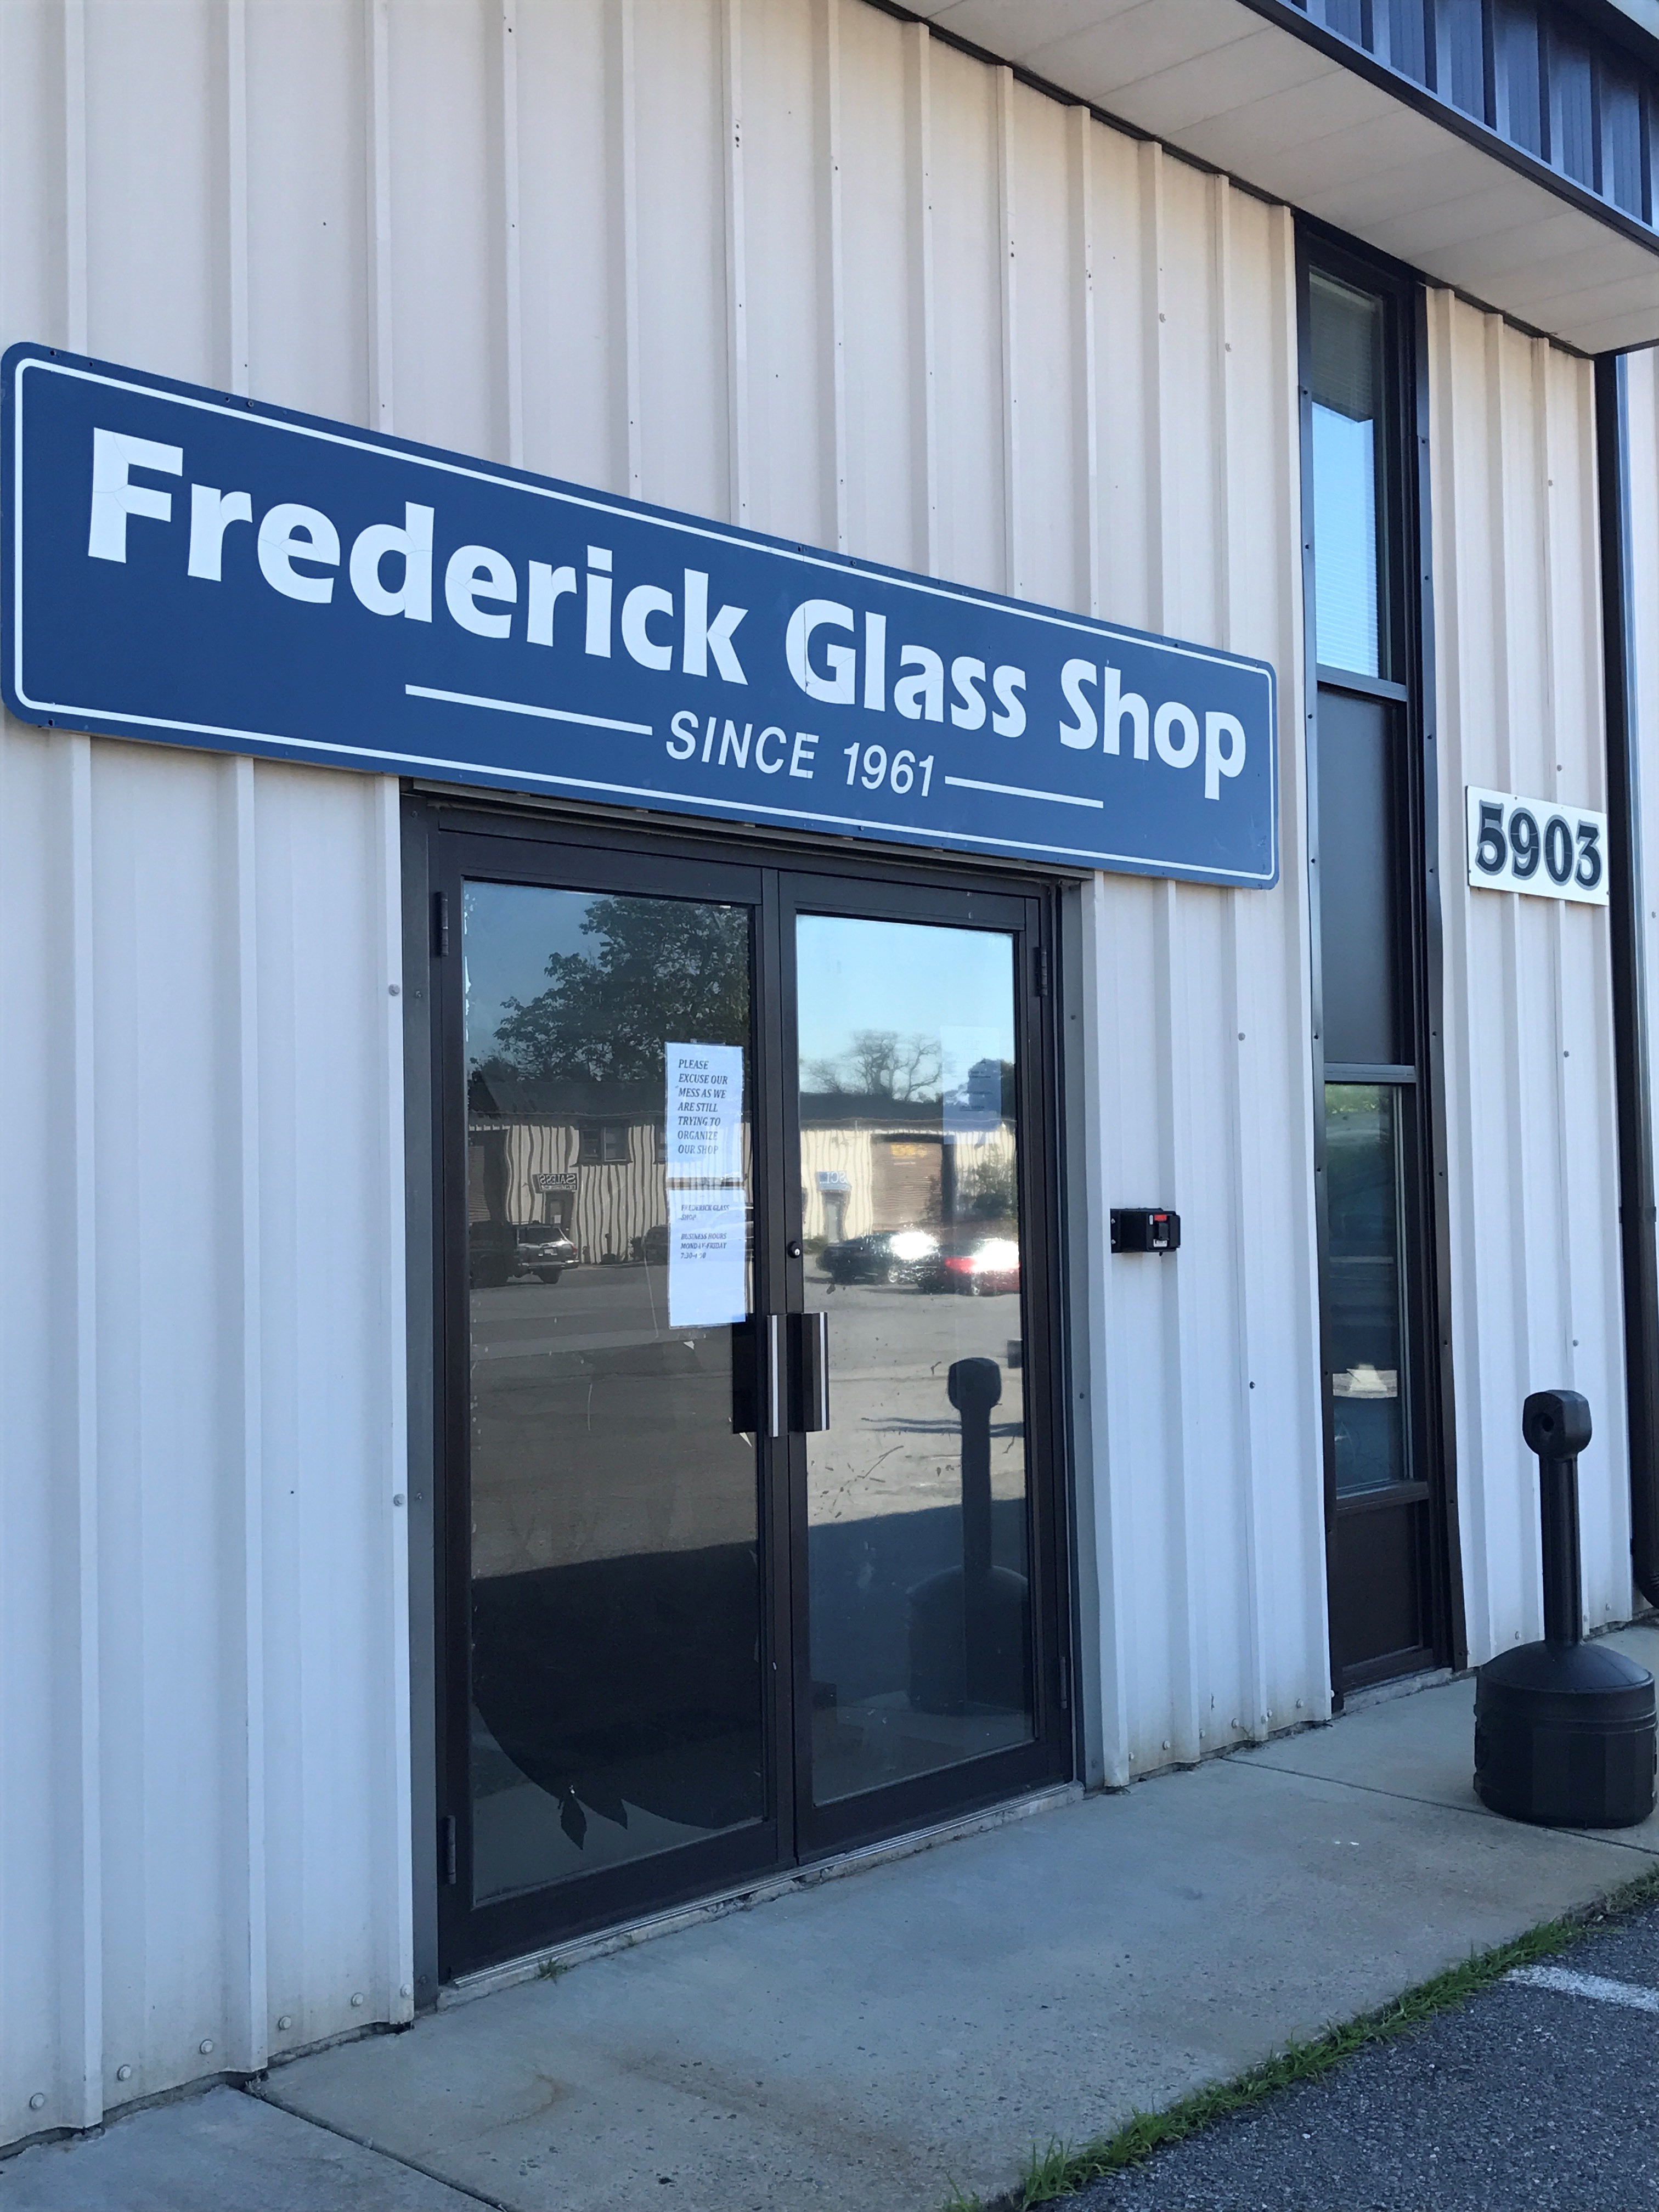 About Frederick Glass | Frederick Glass Shop